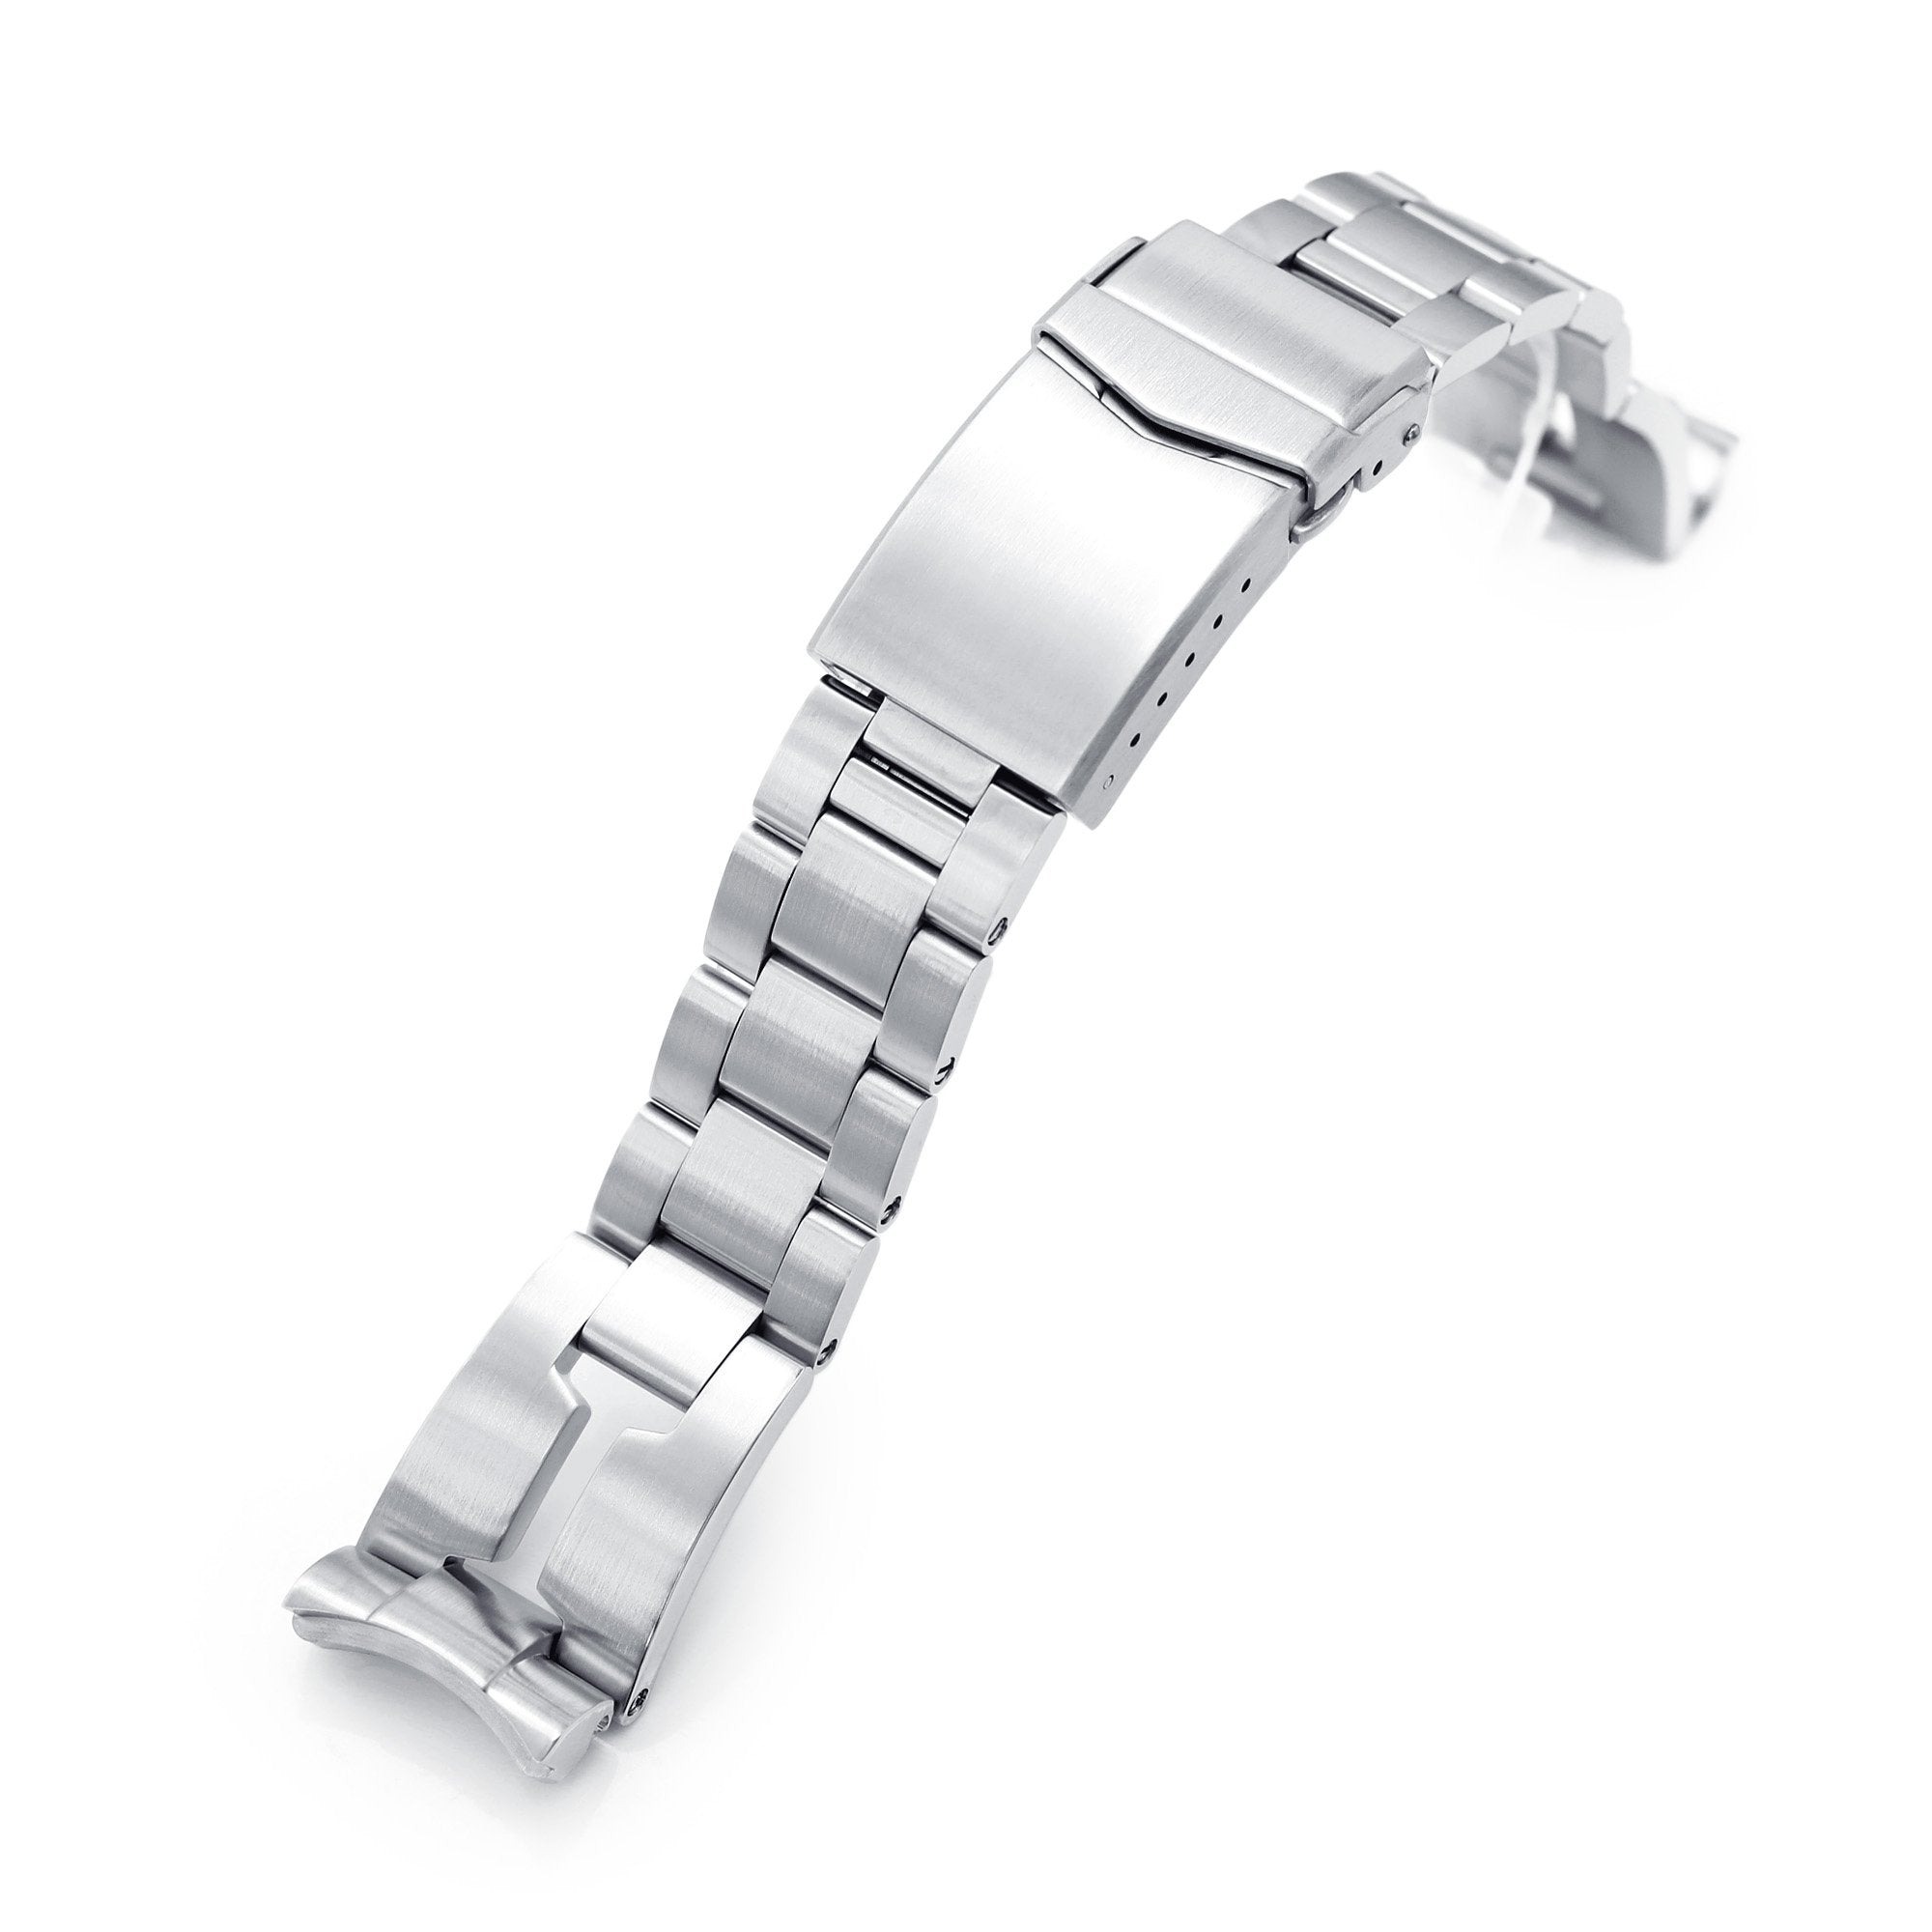 20mm Retro Razor 316L Stainless Steel Watch Bracelet for Seiko Mini Turtles SRPC35 Brushed V-Clasp Strapcode Watch Bands